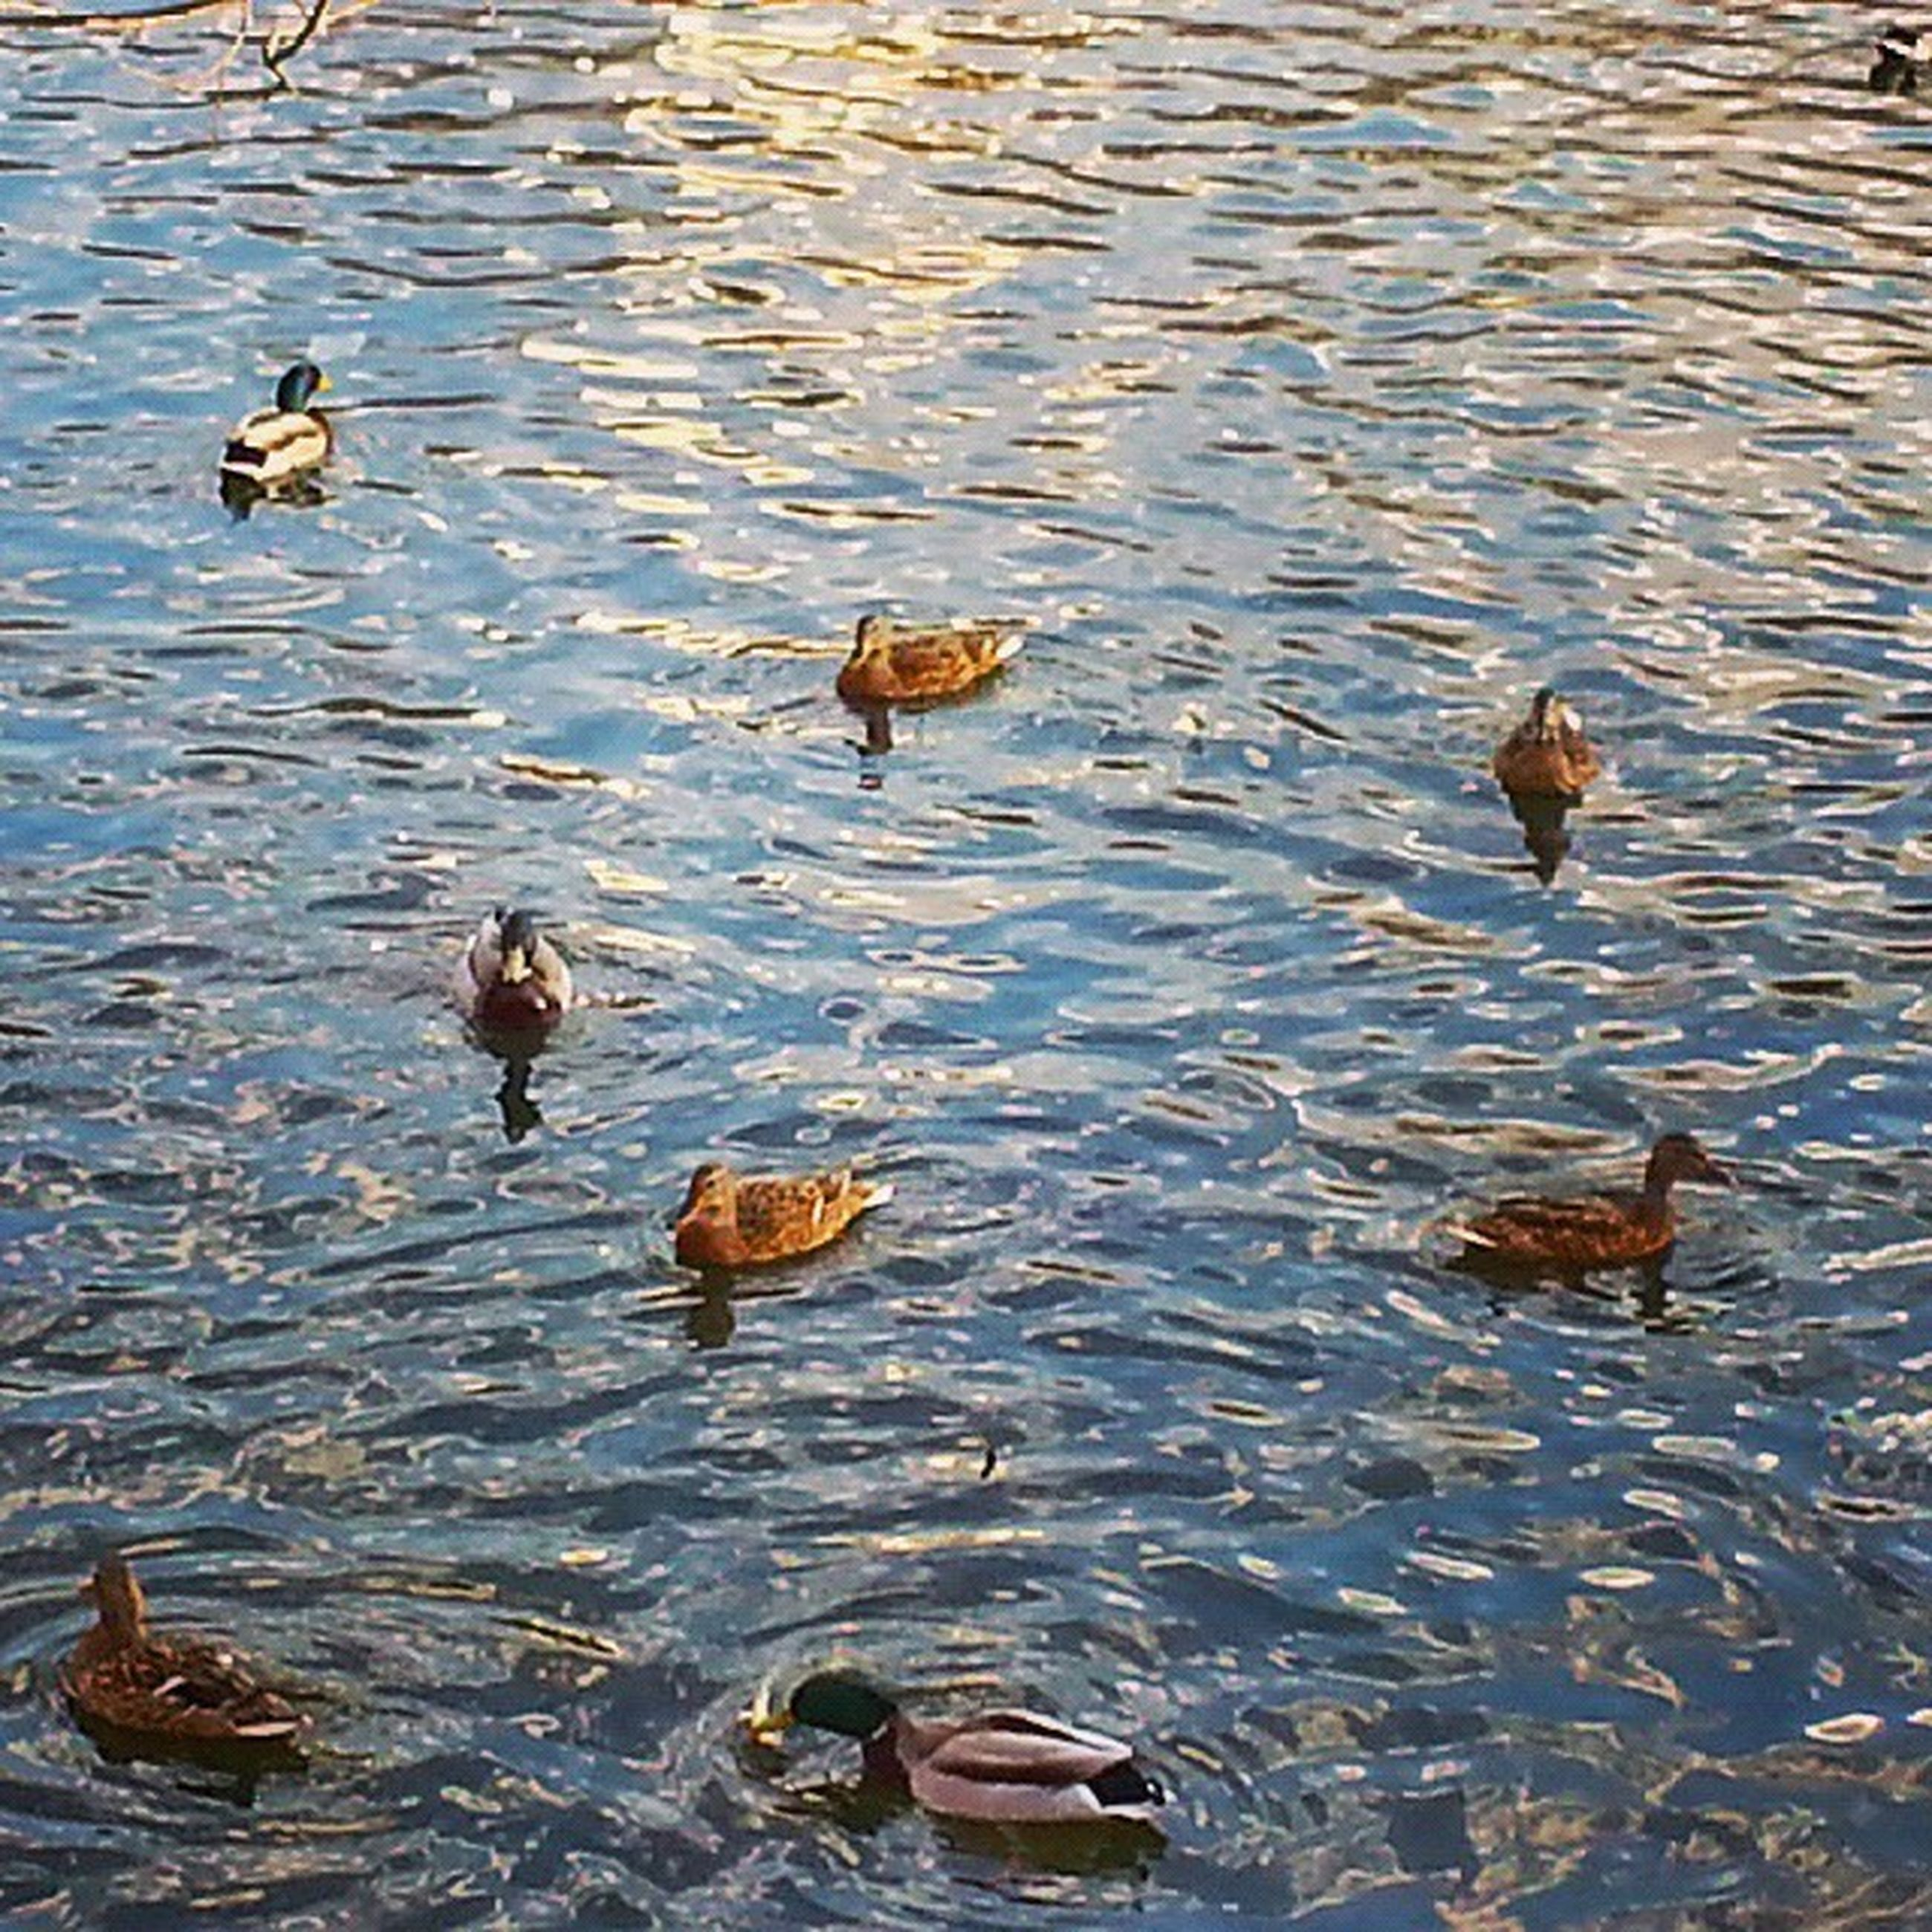 bird, animal themes, animals in the wild, wildlife, water, duck, lake, swimming, flock of birds, mallard duck, high angle view, reflection, togetherness, medium group of animals, water bird, nature, rippled, day, waterfront